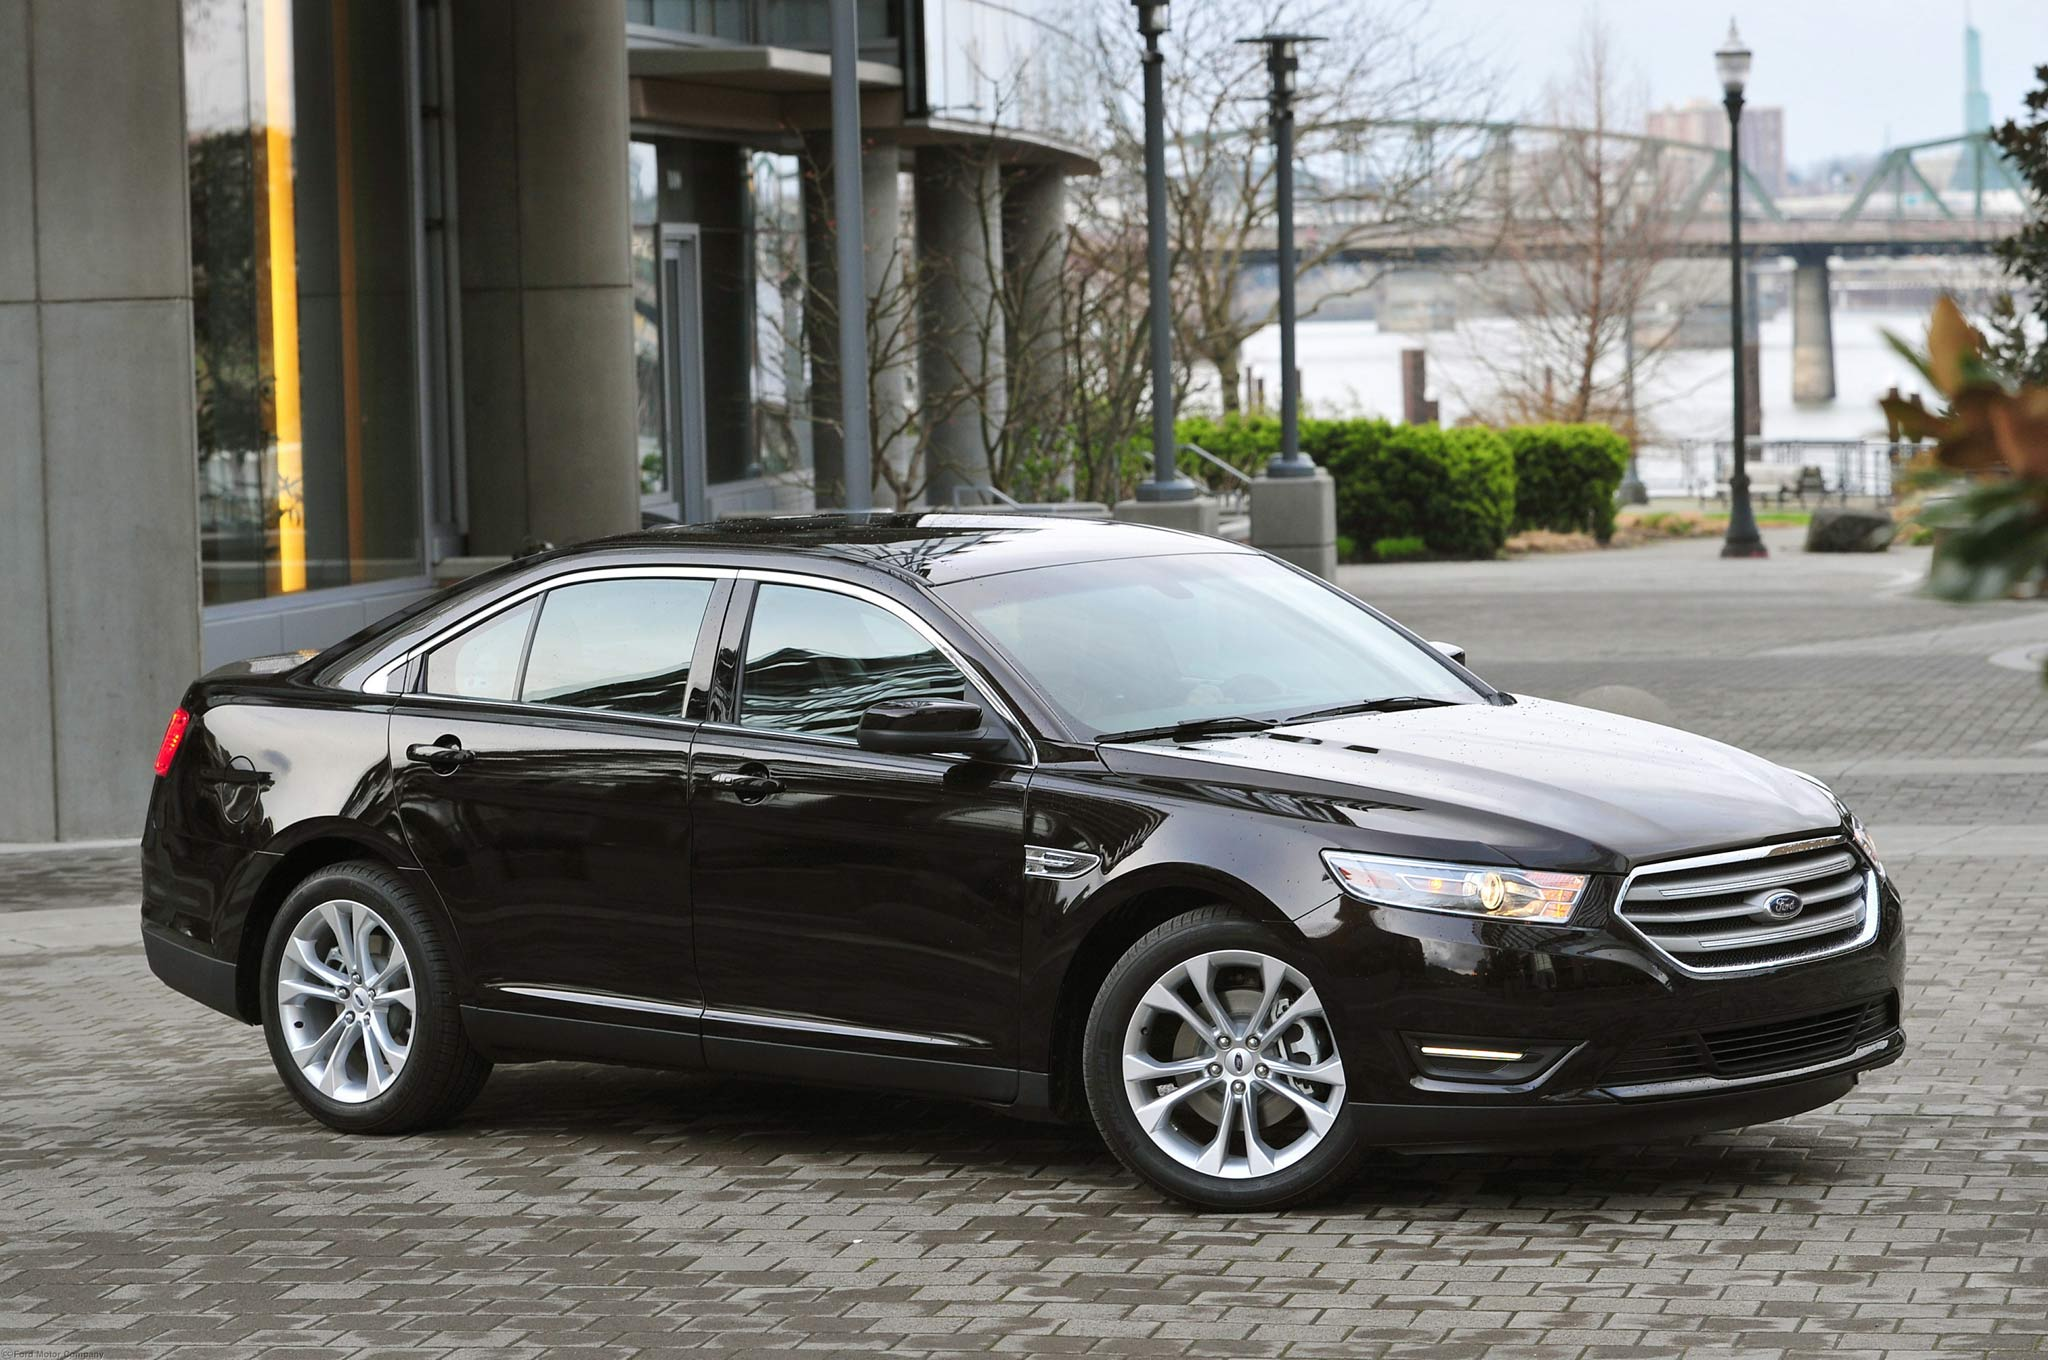 2013 Ford Taurus SHO - Editors' Notebook - Specs - Automobile Magazine